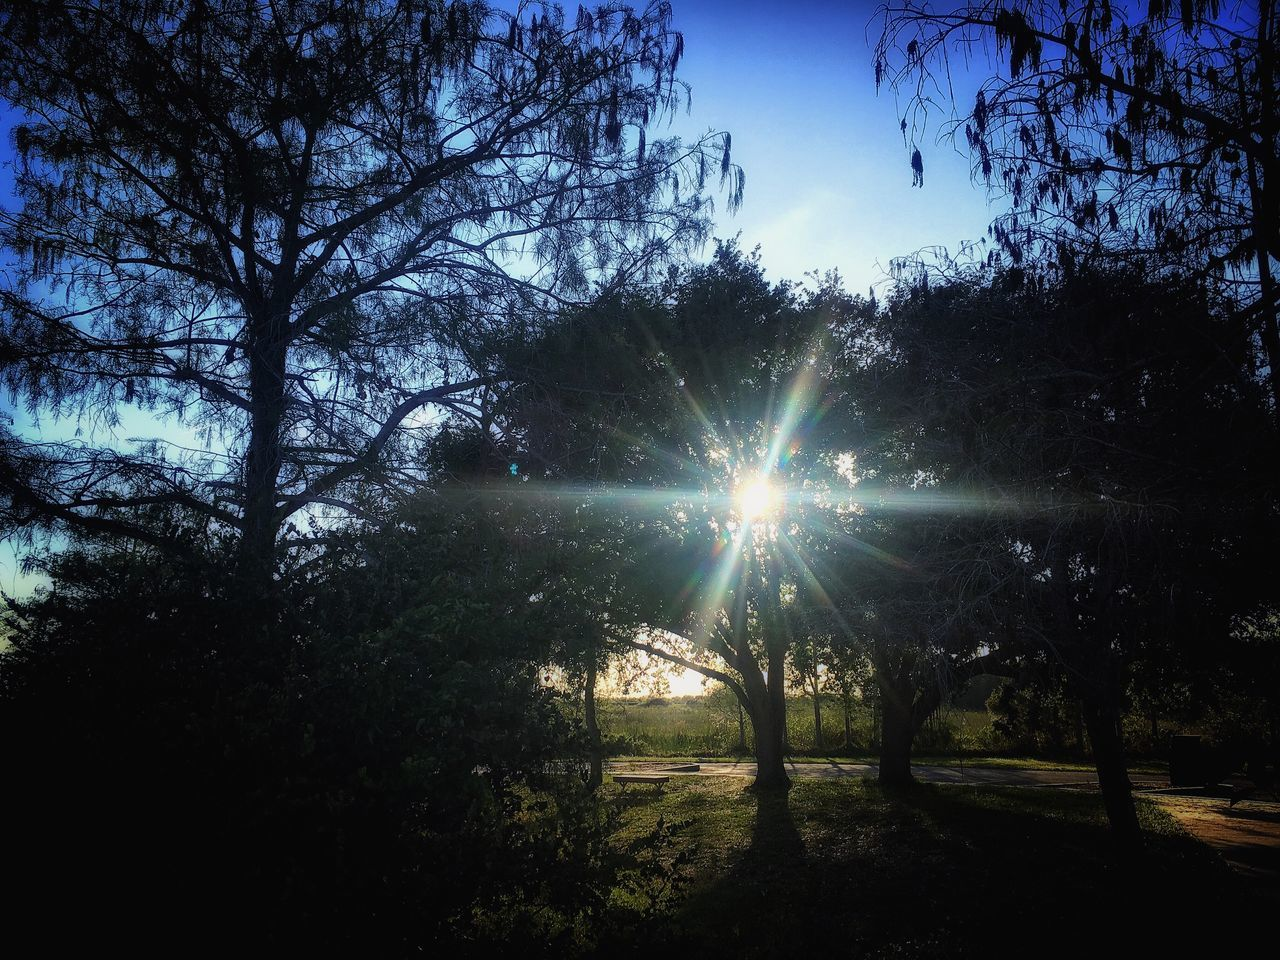 tree, sunbeam, nature, sun, sunlight, scenics, tranquility, beauty in nature, tranquil scene, silhouette, no people, growth, outdoors, branch, sky, day, forest, landscape, sunset